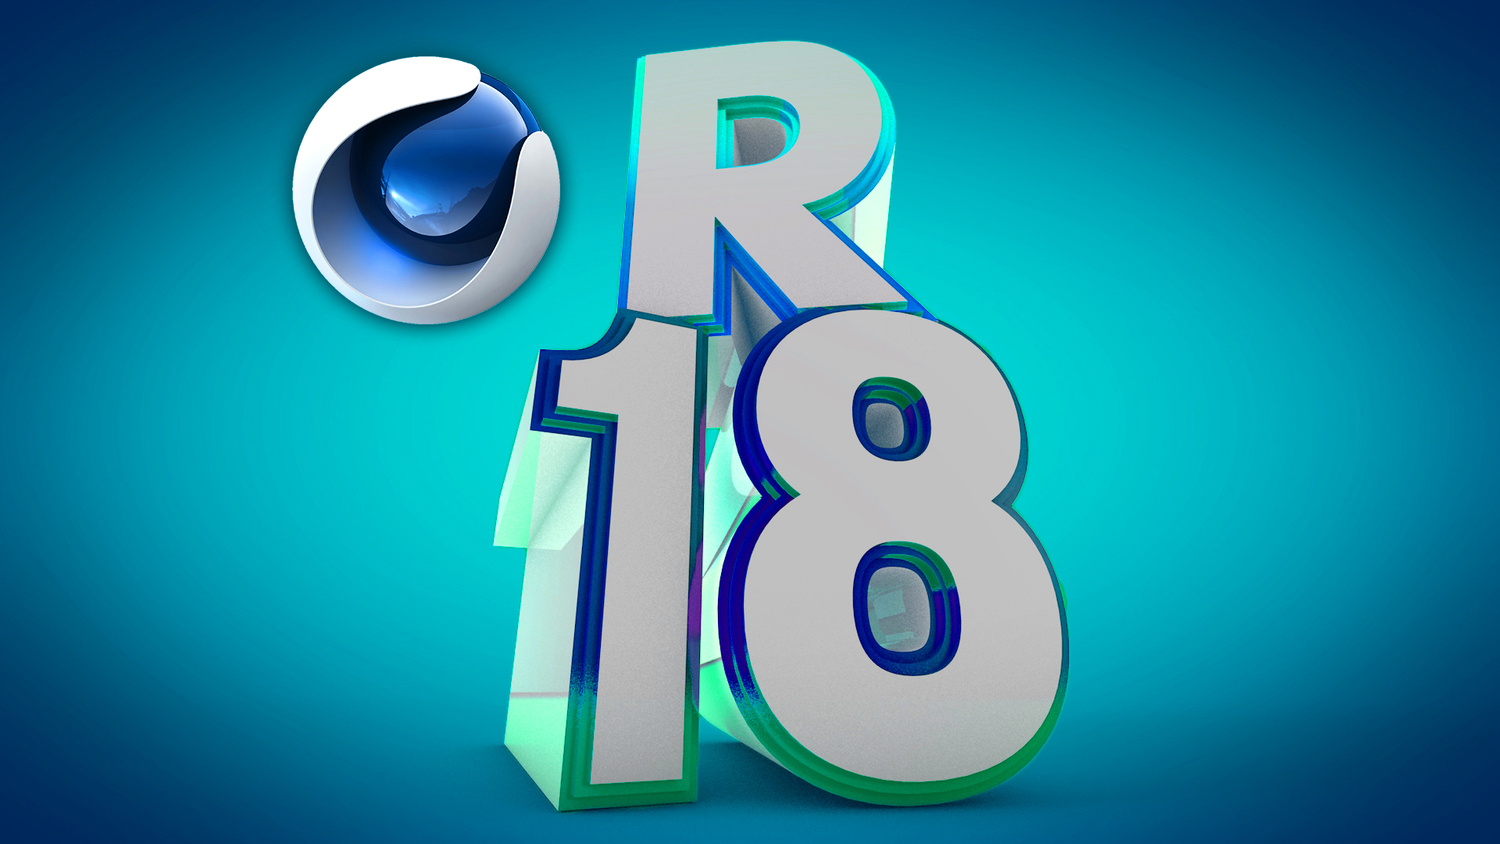 Cinema 4D R18 - Shadow Catcher, a new Material for 3D Compositing